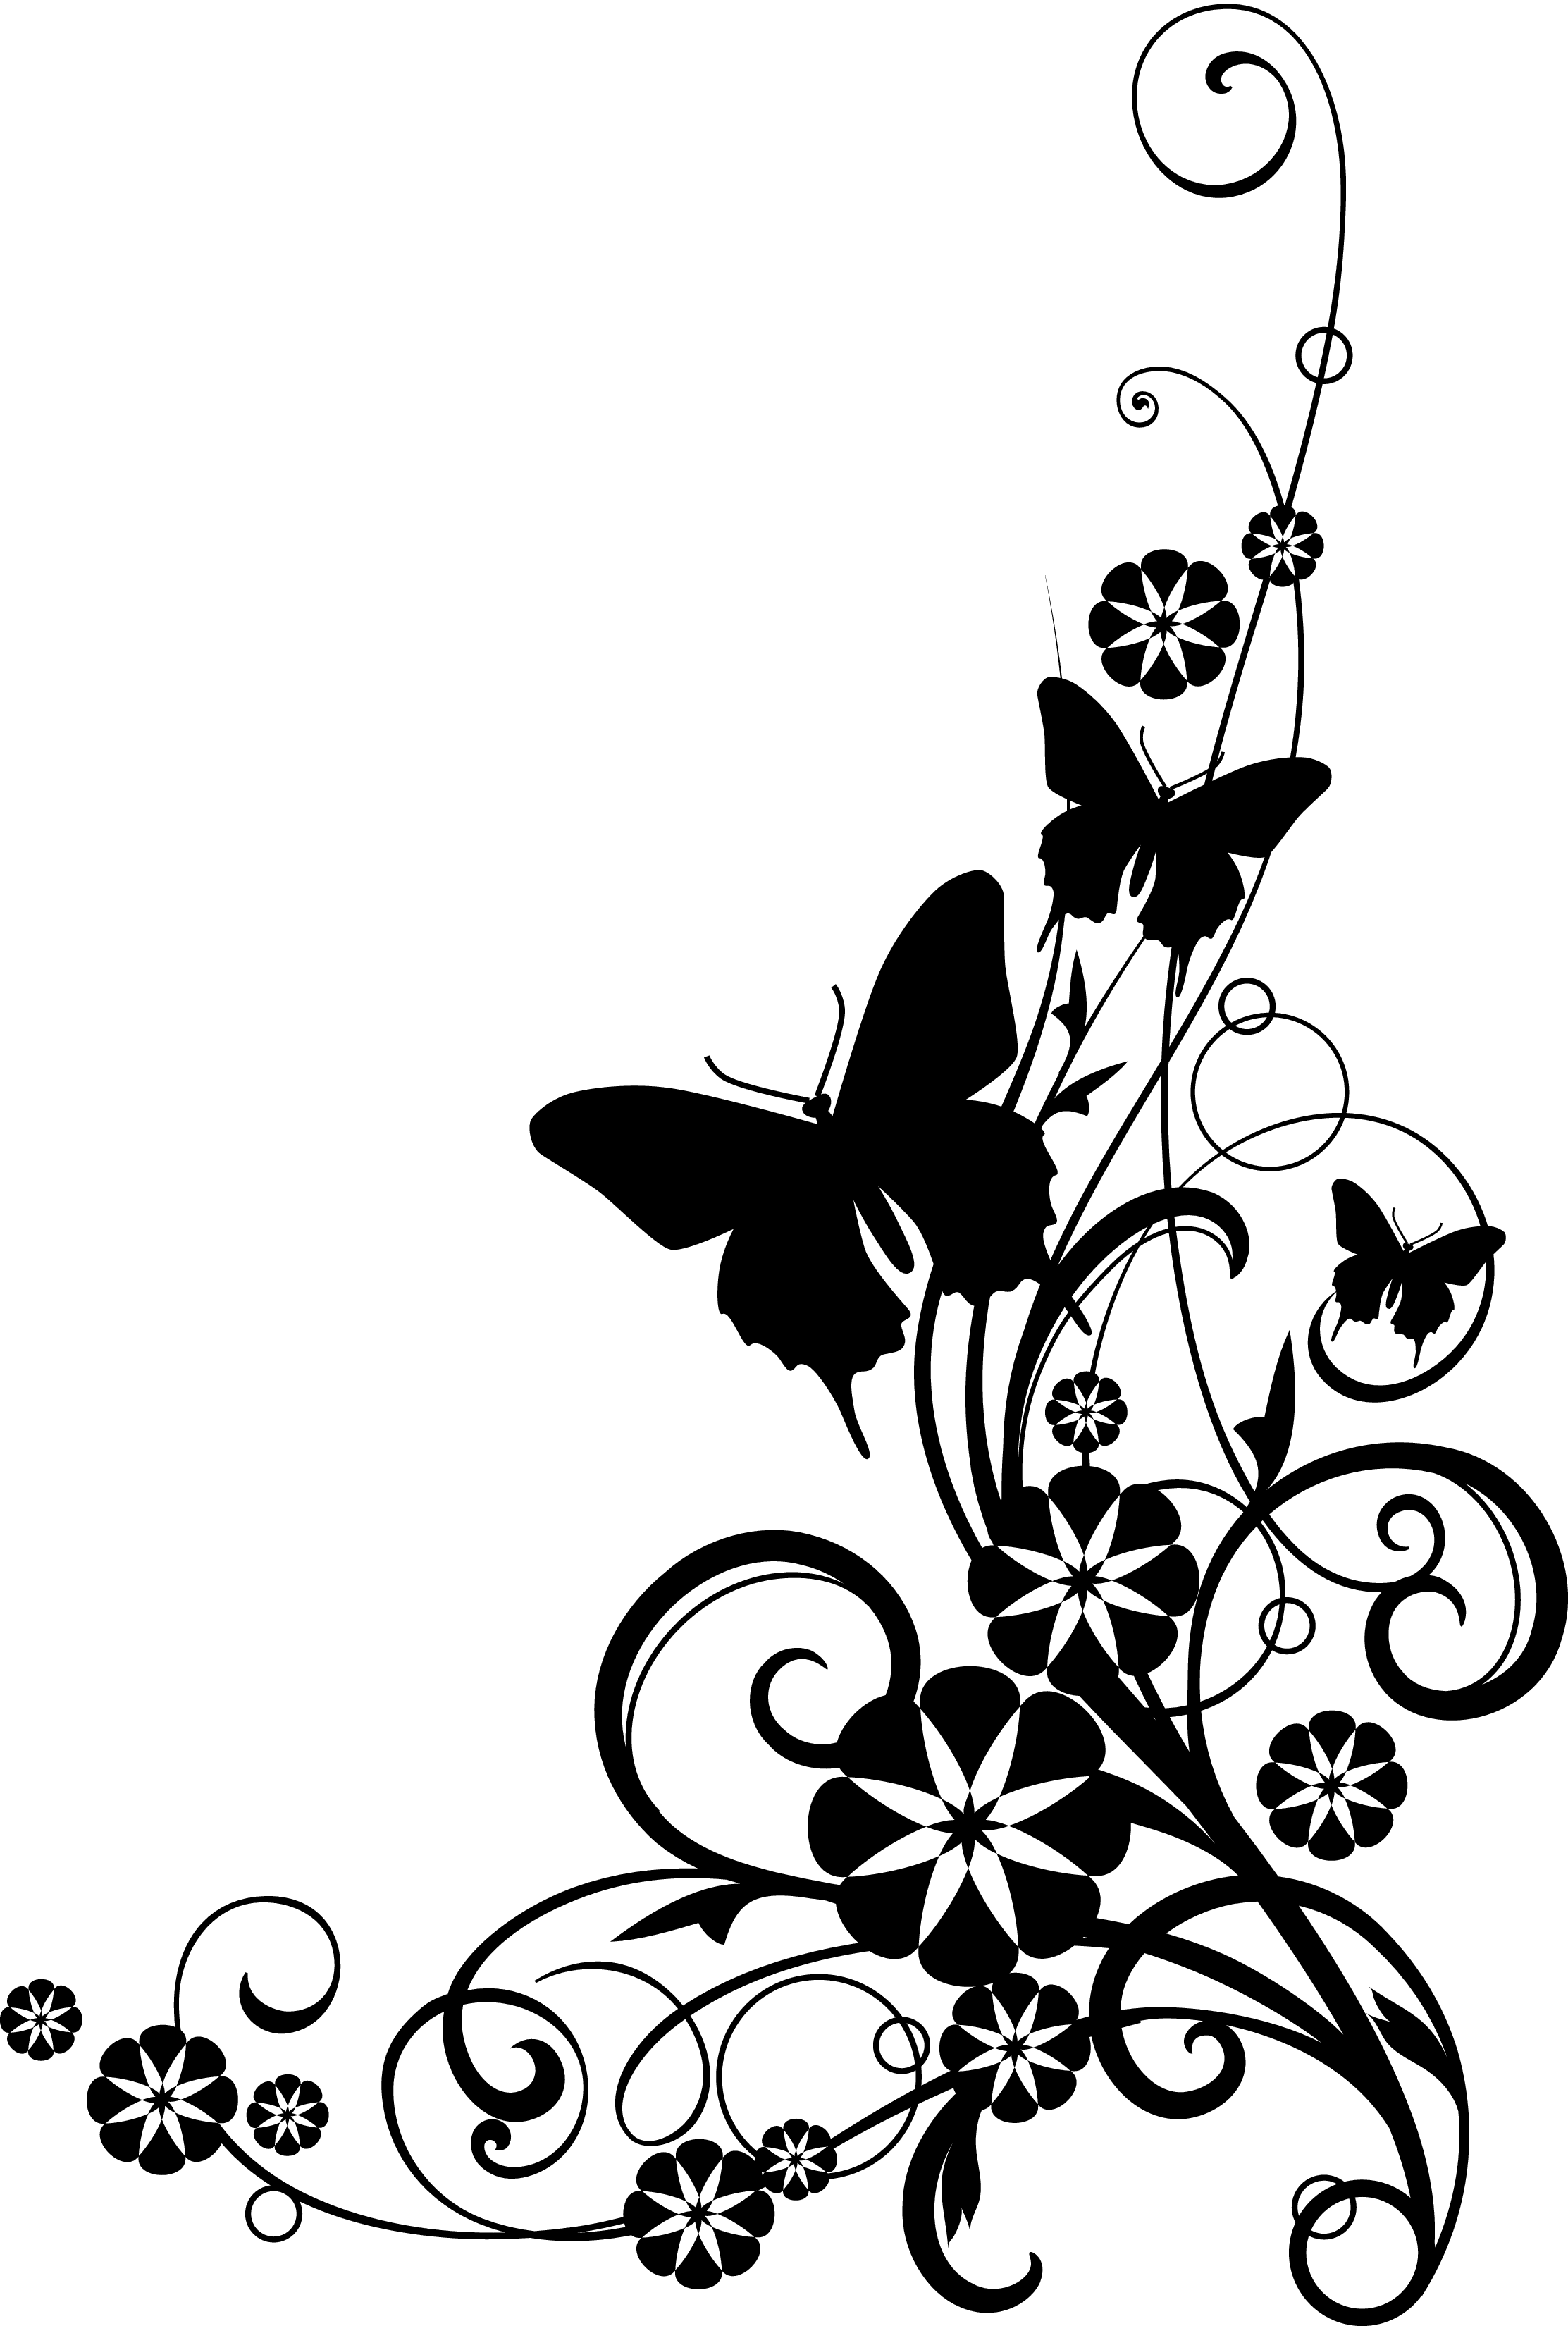 Flower clipart with roots jpg free stock 8c59ec4066e54d3f207a7d2aa92e8274_vine-clipart-black-and-white ... jpg free stock